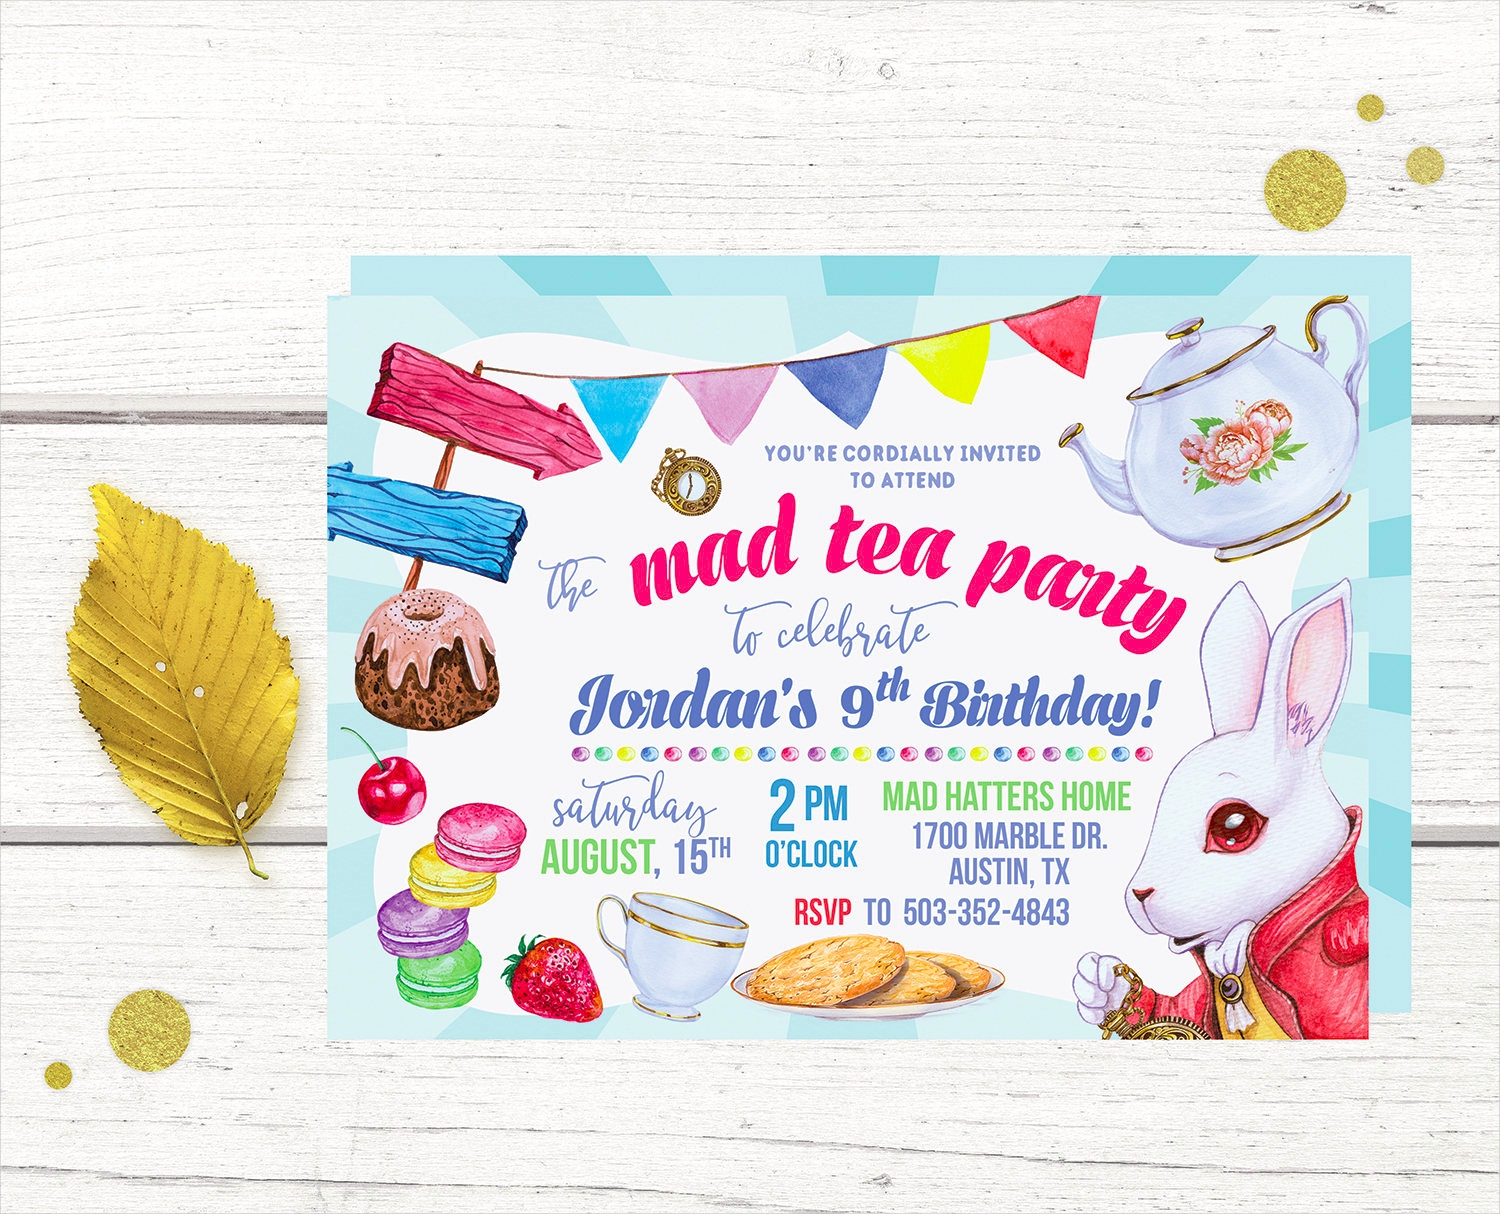 mad tea party invitation design